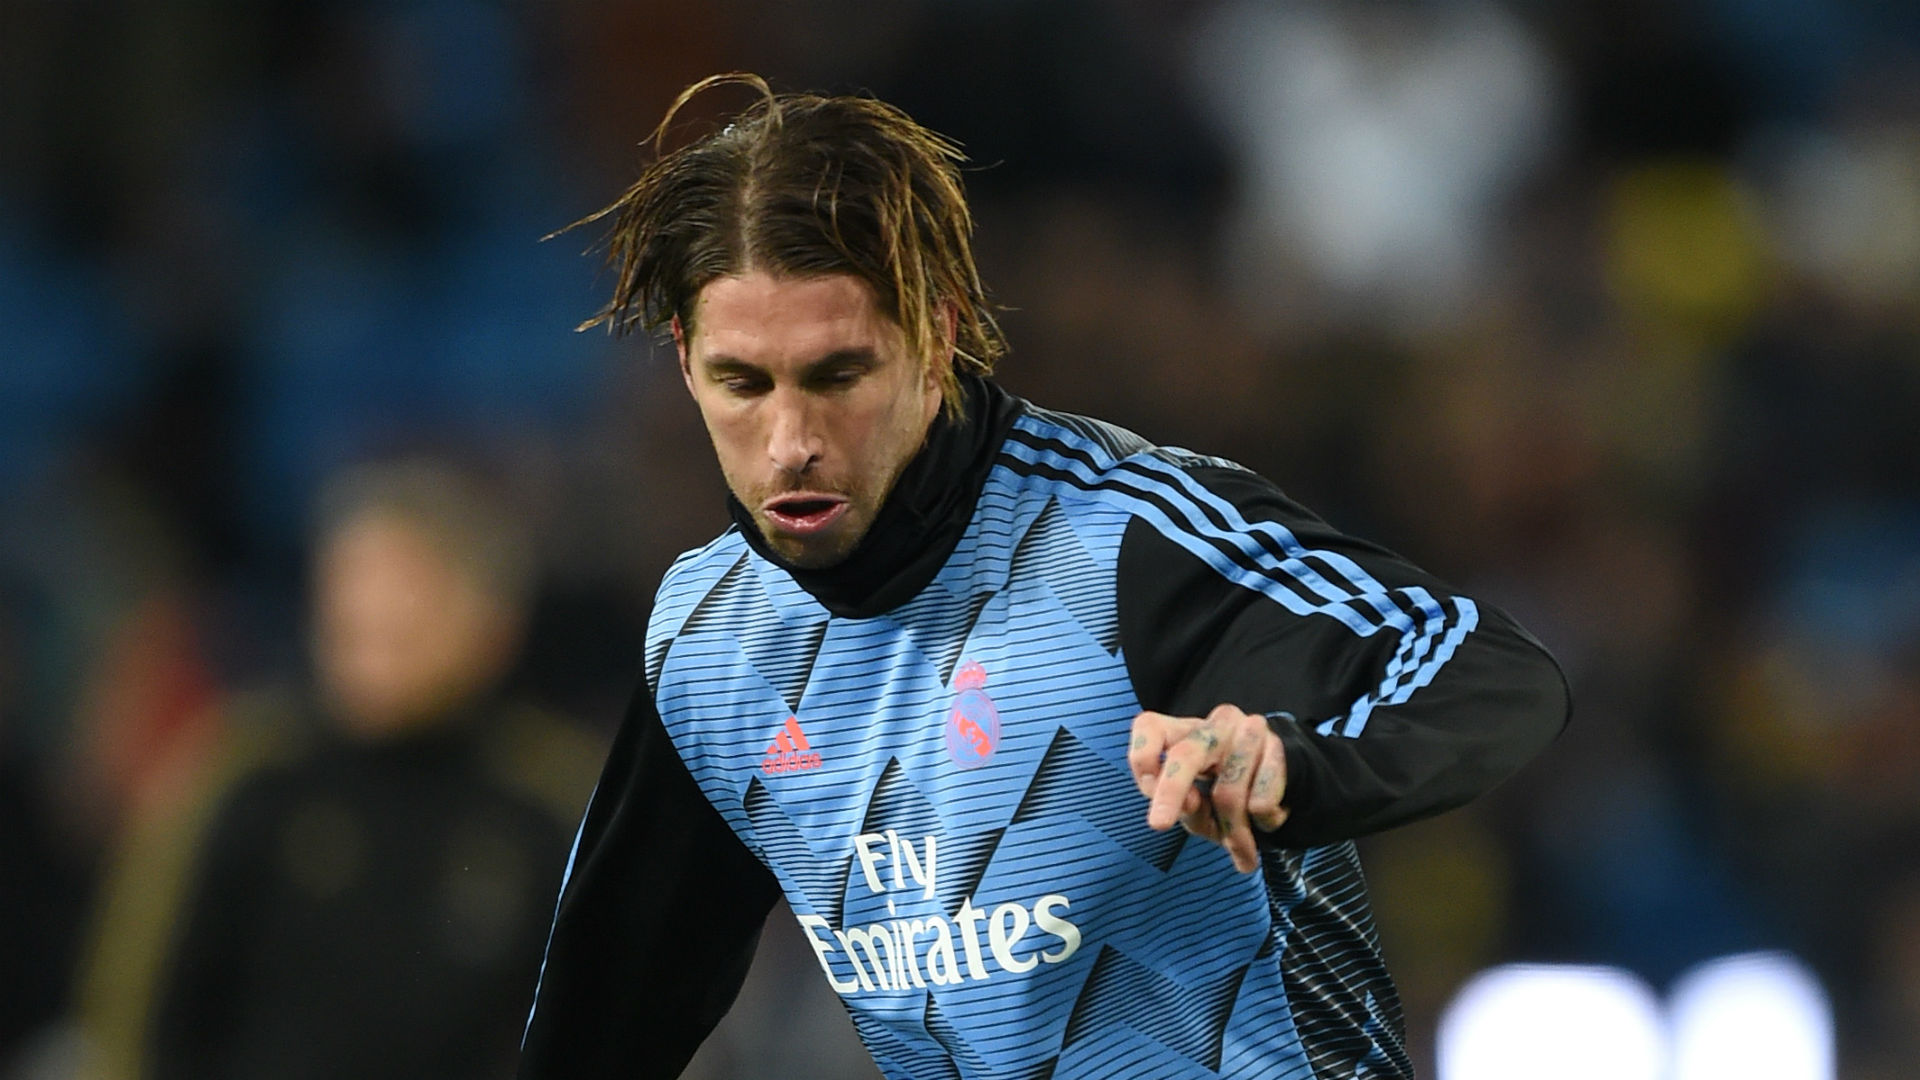 Ramos returns to Real Madrid squad for Valladolid trip